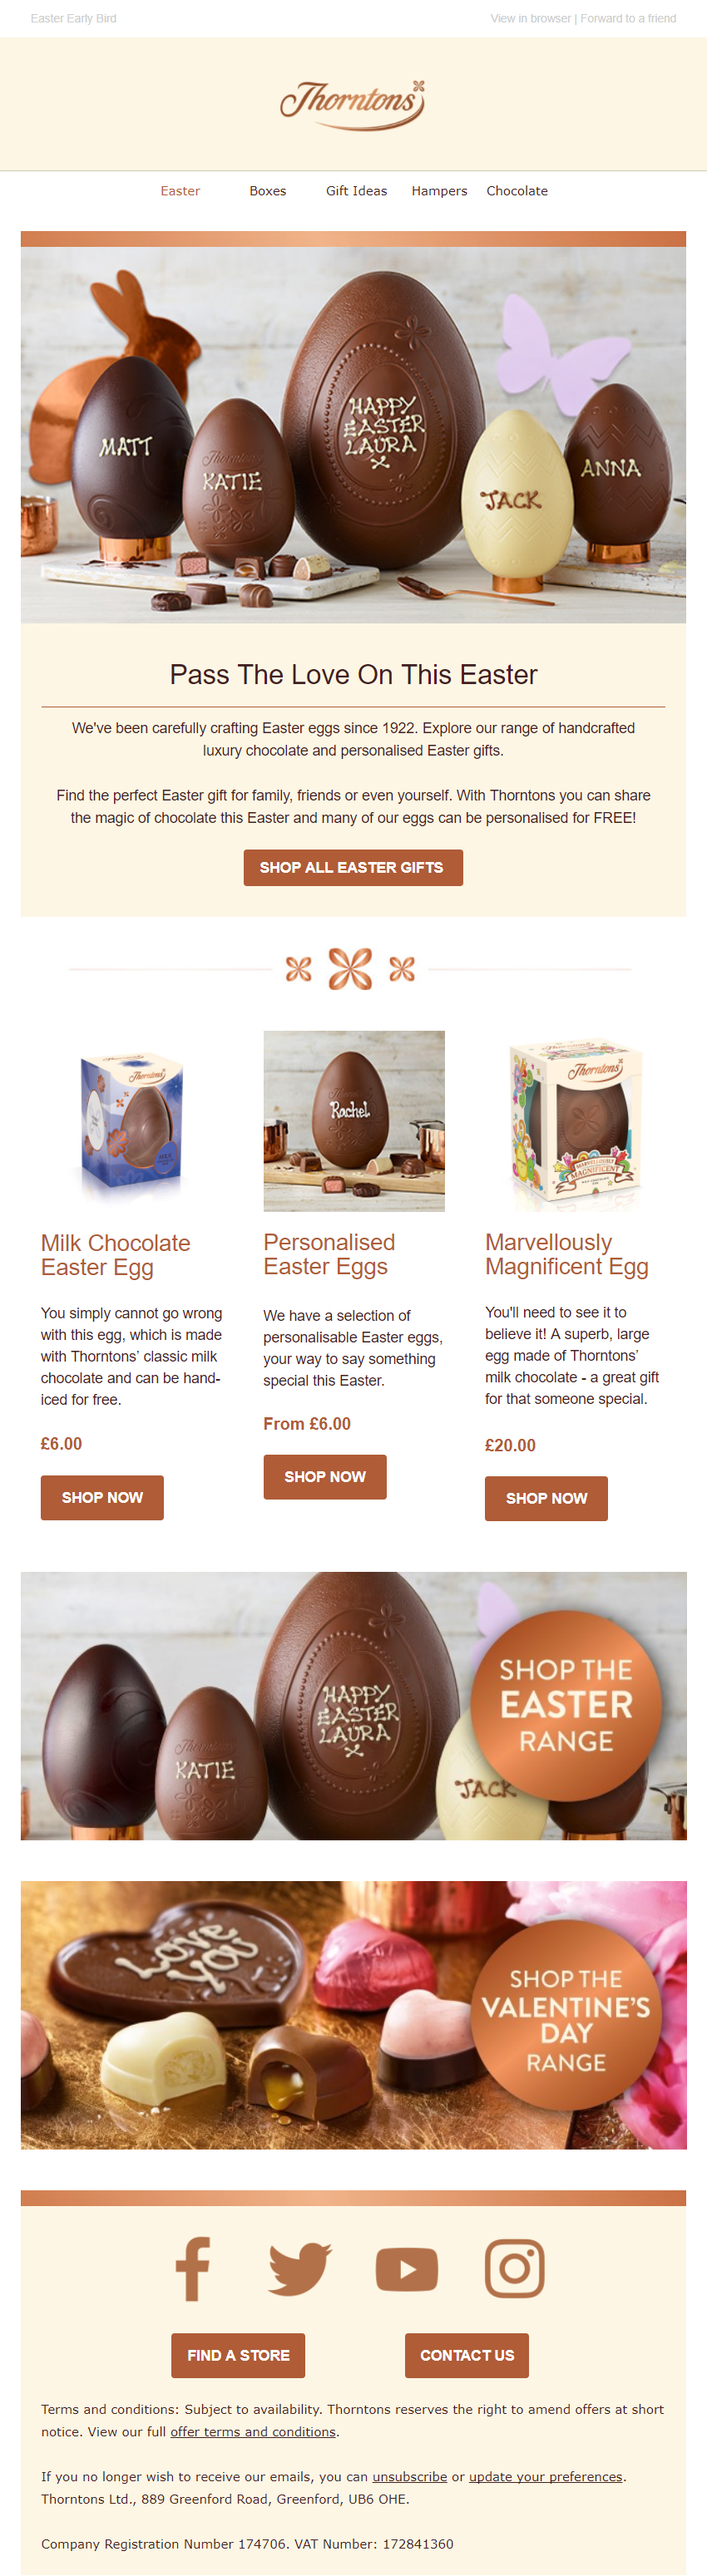 Easter email from thorntons emailmarketing email marketing easter email from thorntons emailmarketing email marketing chocolate gifts easter easter emails pinterest chocolate easter eggs negle Gallery